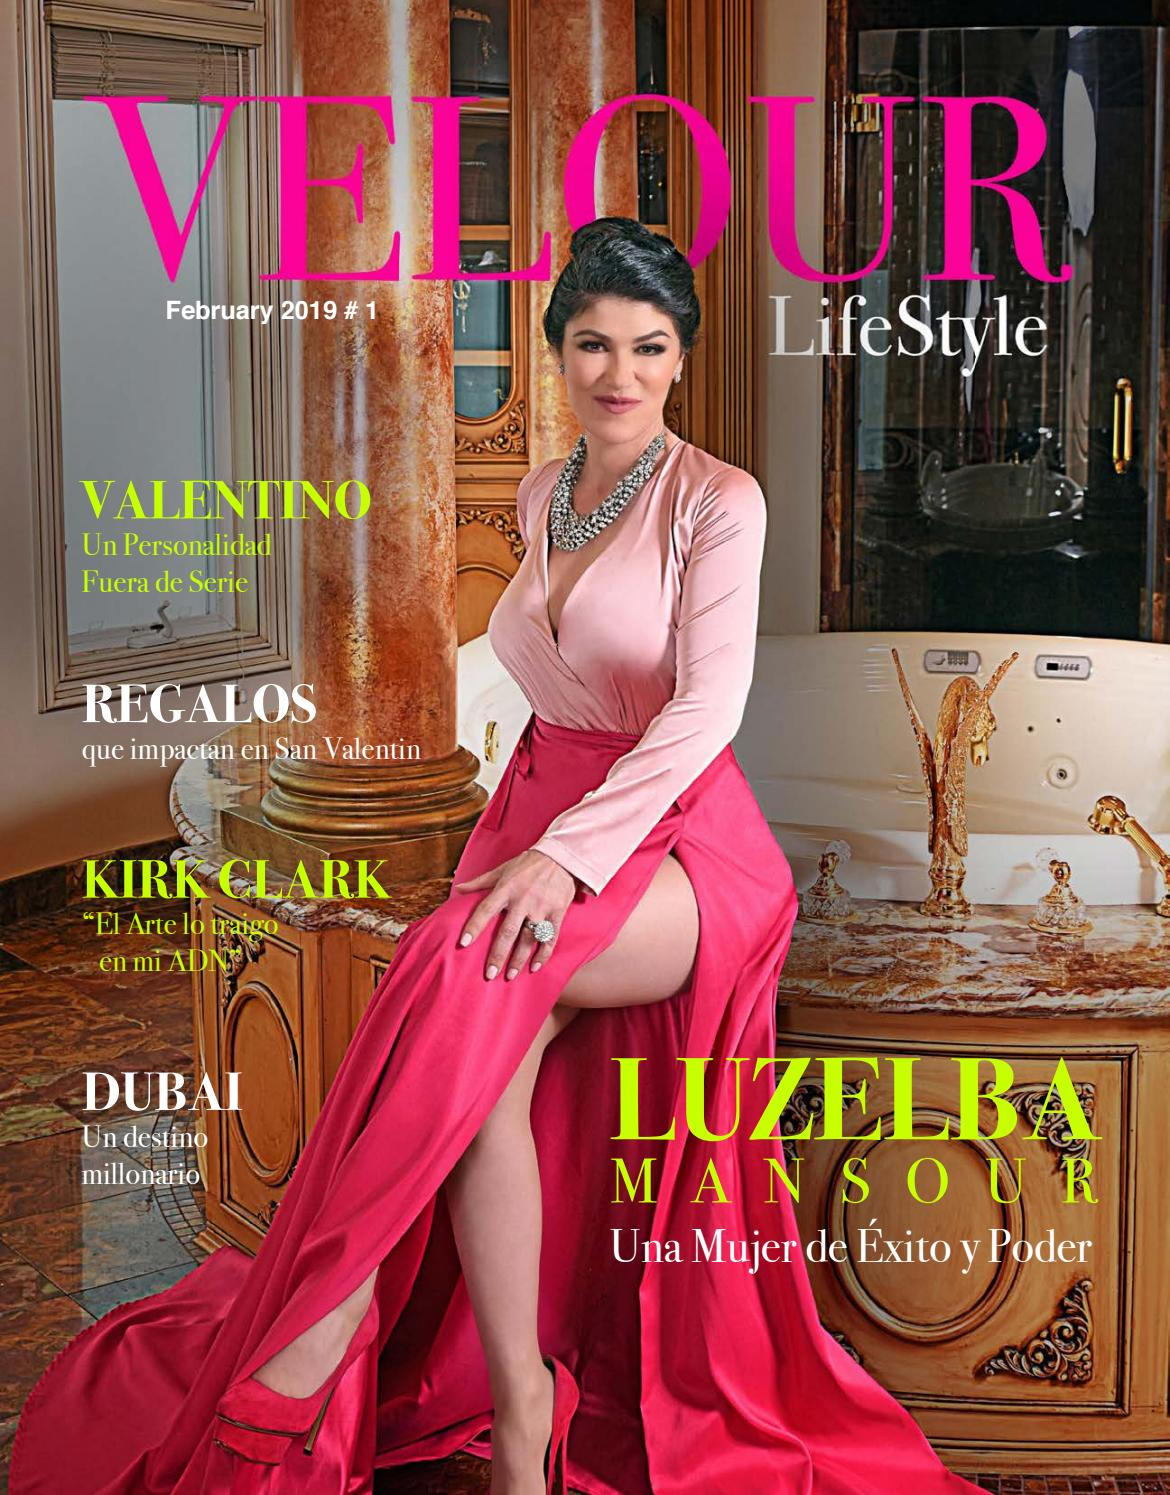 fa001b8be VELOUR LIFESTYLE by VELOUR - issuu